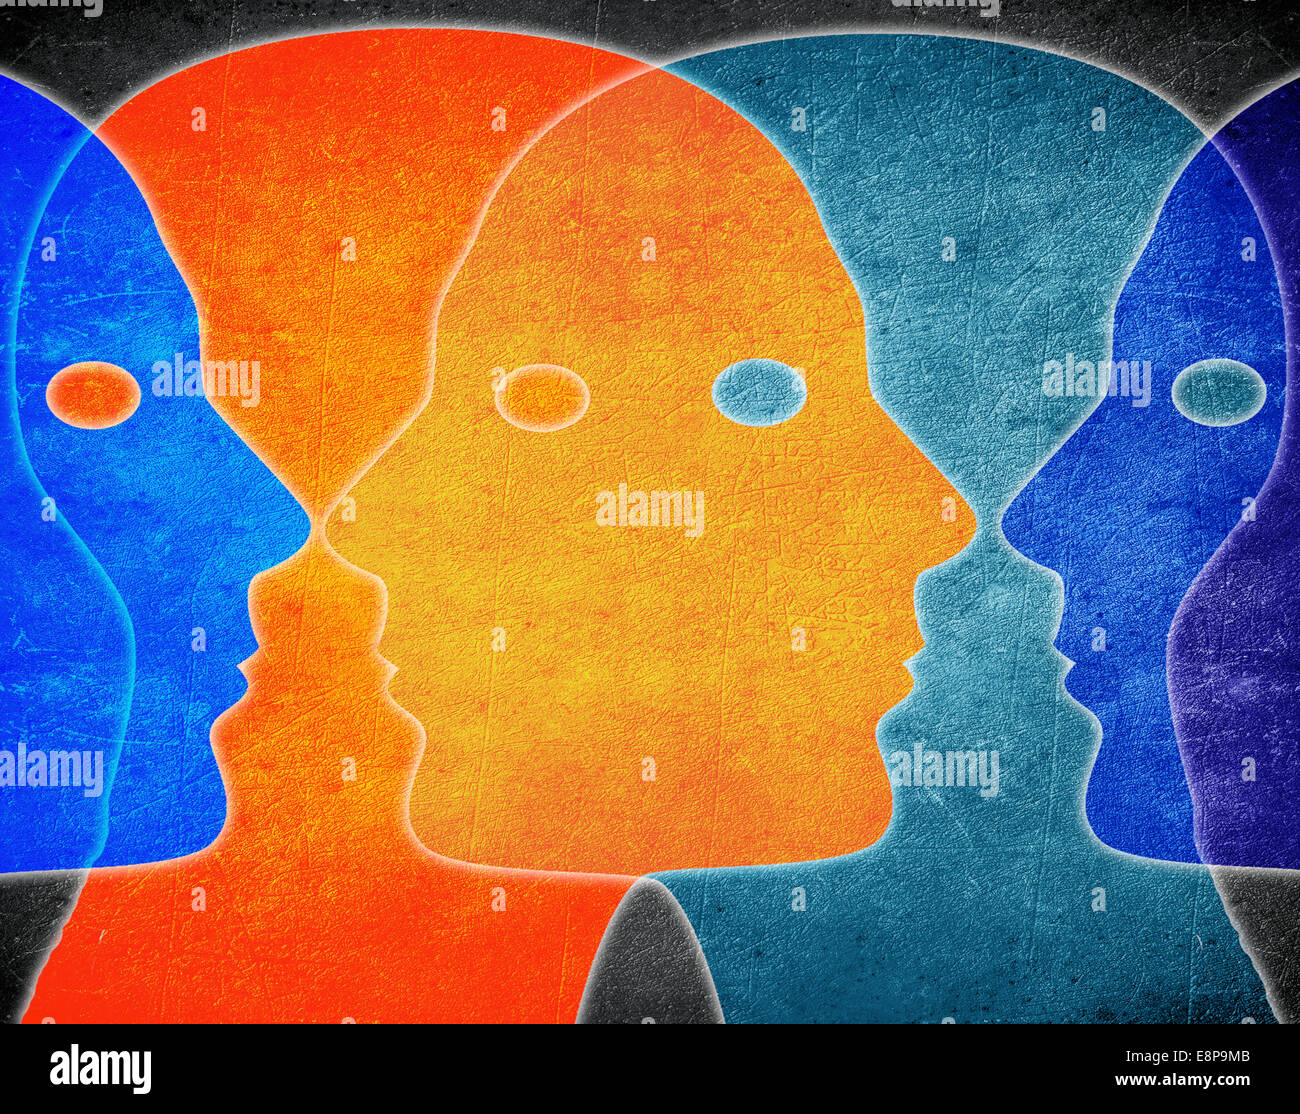 four heads colors digital illustration - Stock Image